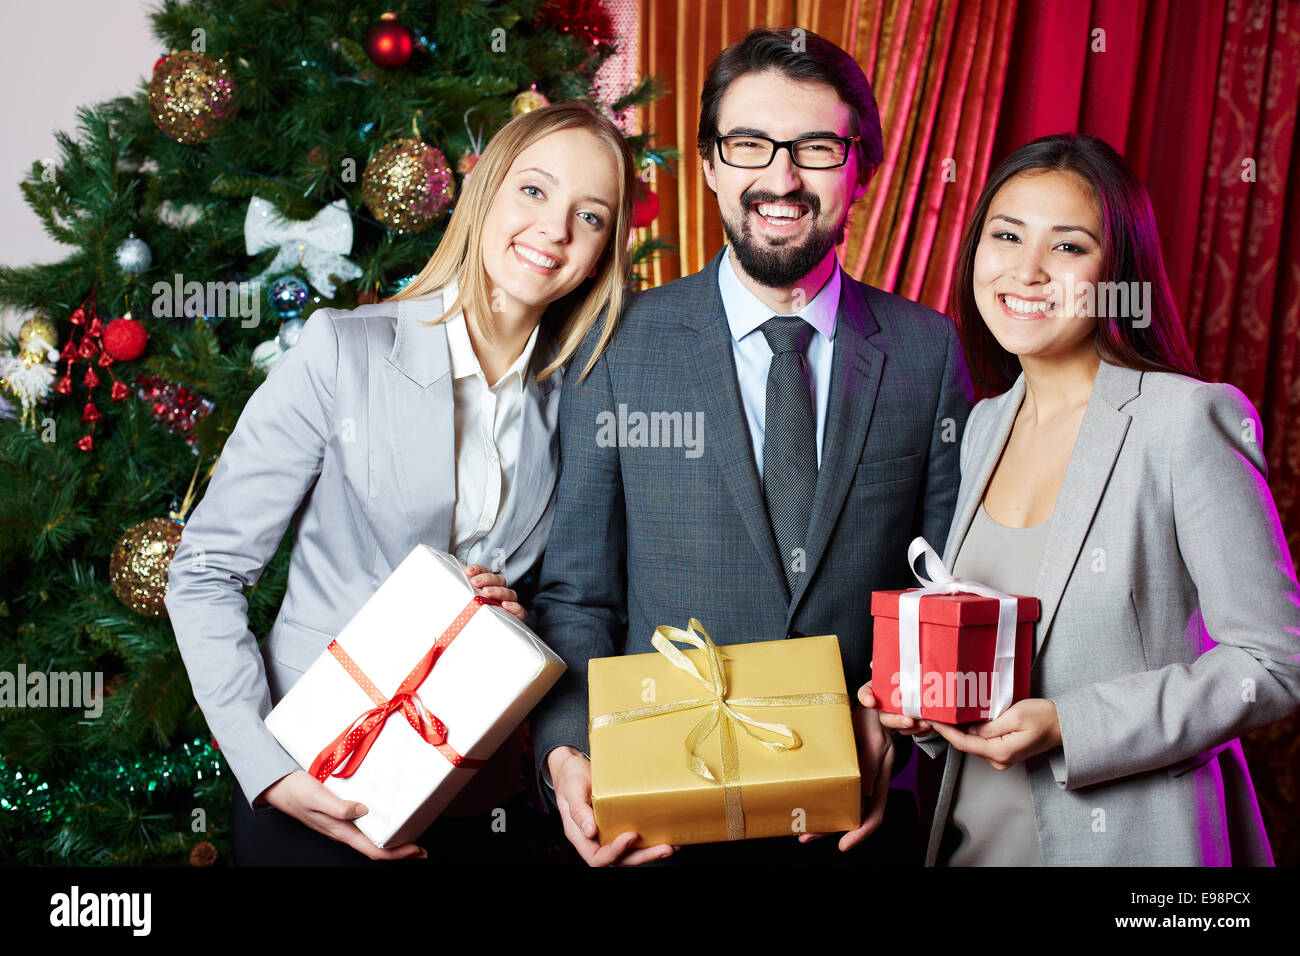 Portrait of joyful colleagues with giftboxes standing by xmas tree - Stock Image